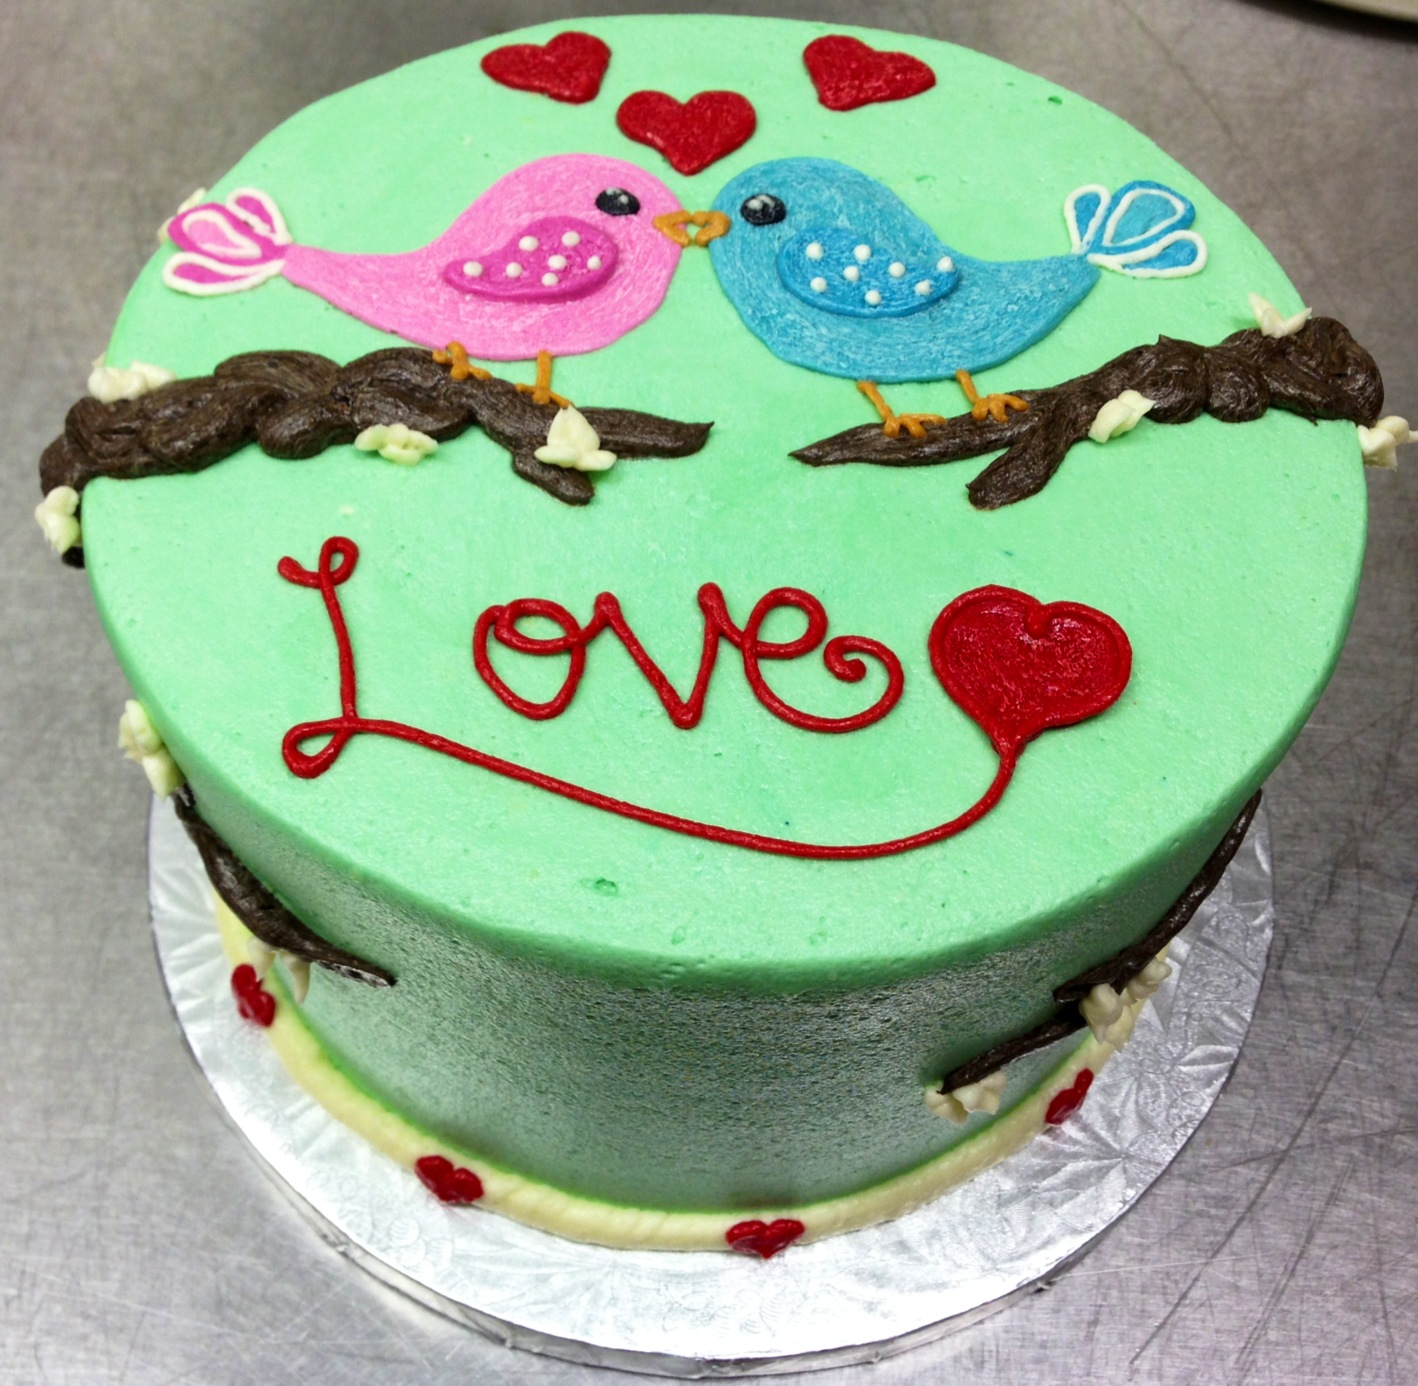 Cake Designs For Valentine S Day : Valentine s Day Cakes Society Bakery